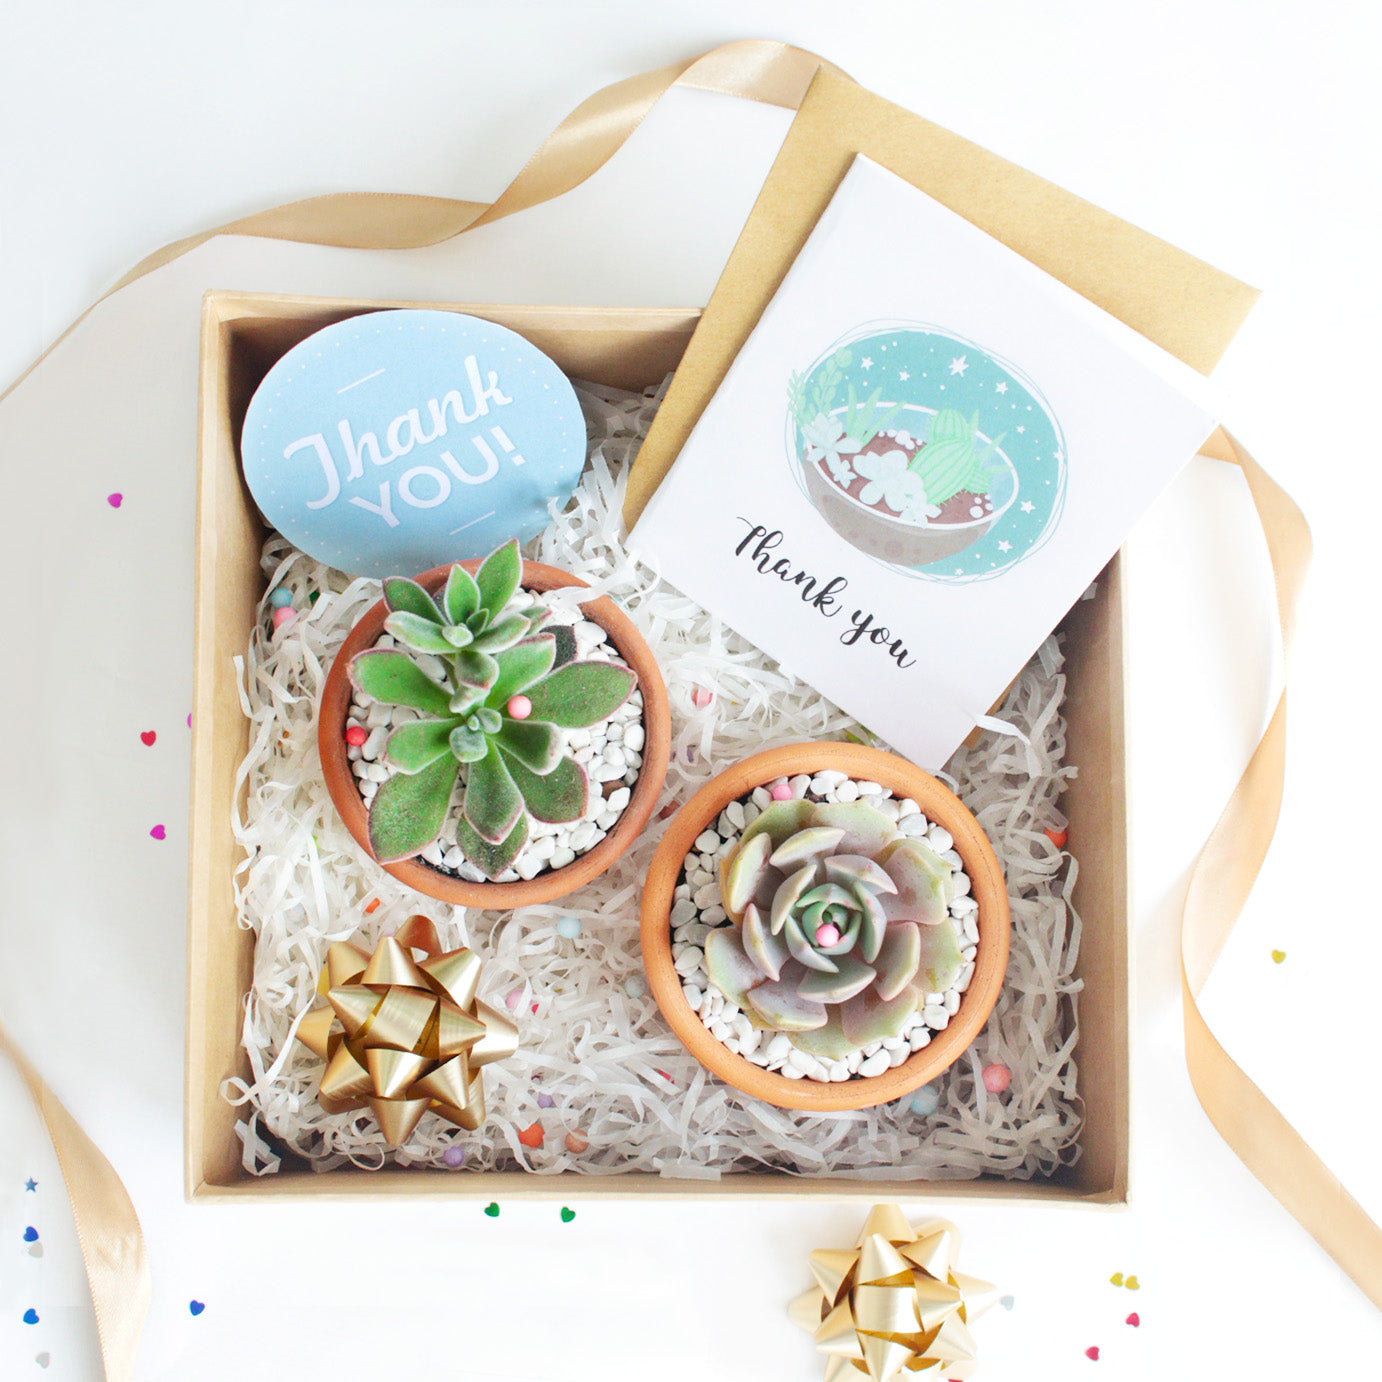 succulent subscription, succulent subscription boxes, succulent monthly subscription, succulent monthly subscription, succulent subscription with pots, best succulent subscription box 2020, succulents for sale, succulent subscription clay pot